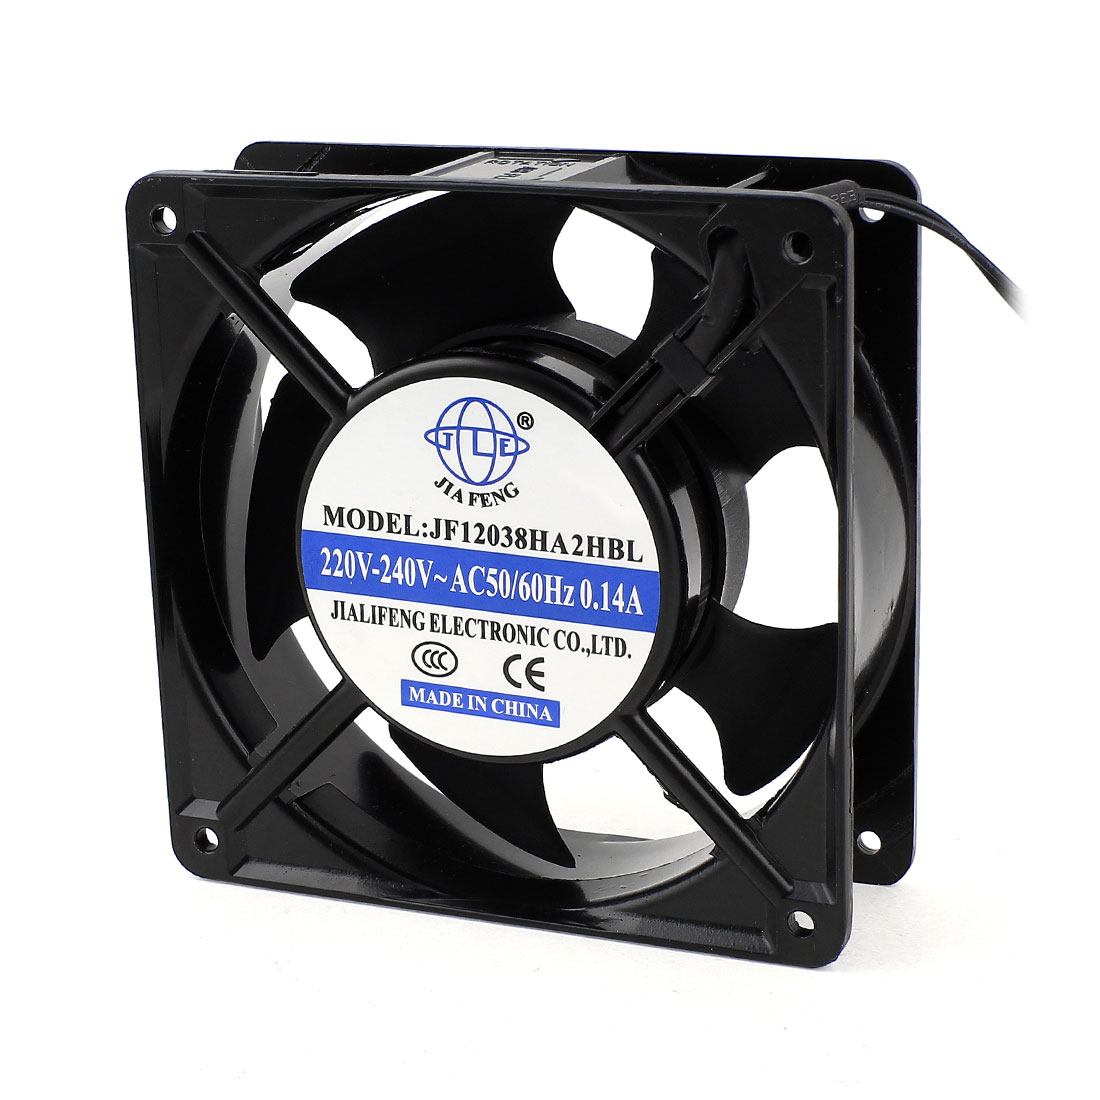 AC 220V-240V 0.14A 2 Wires Ball Bearing Axial Cooling Fan 120mm x 38mm 12038